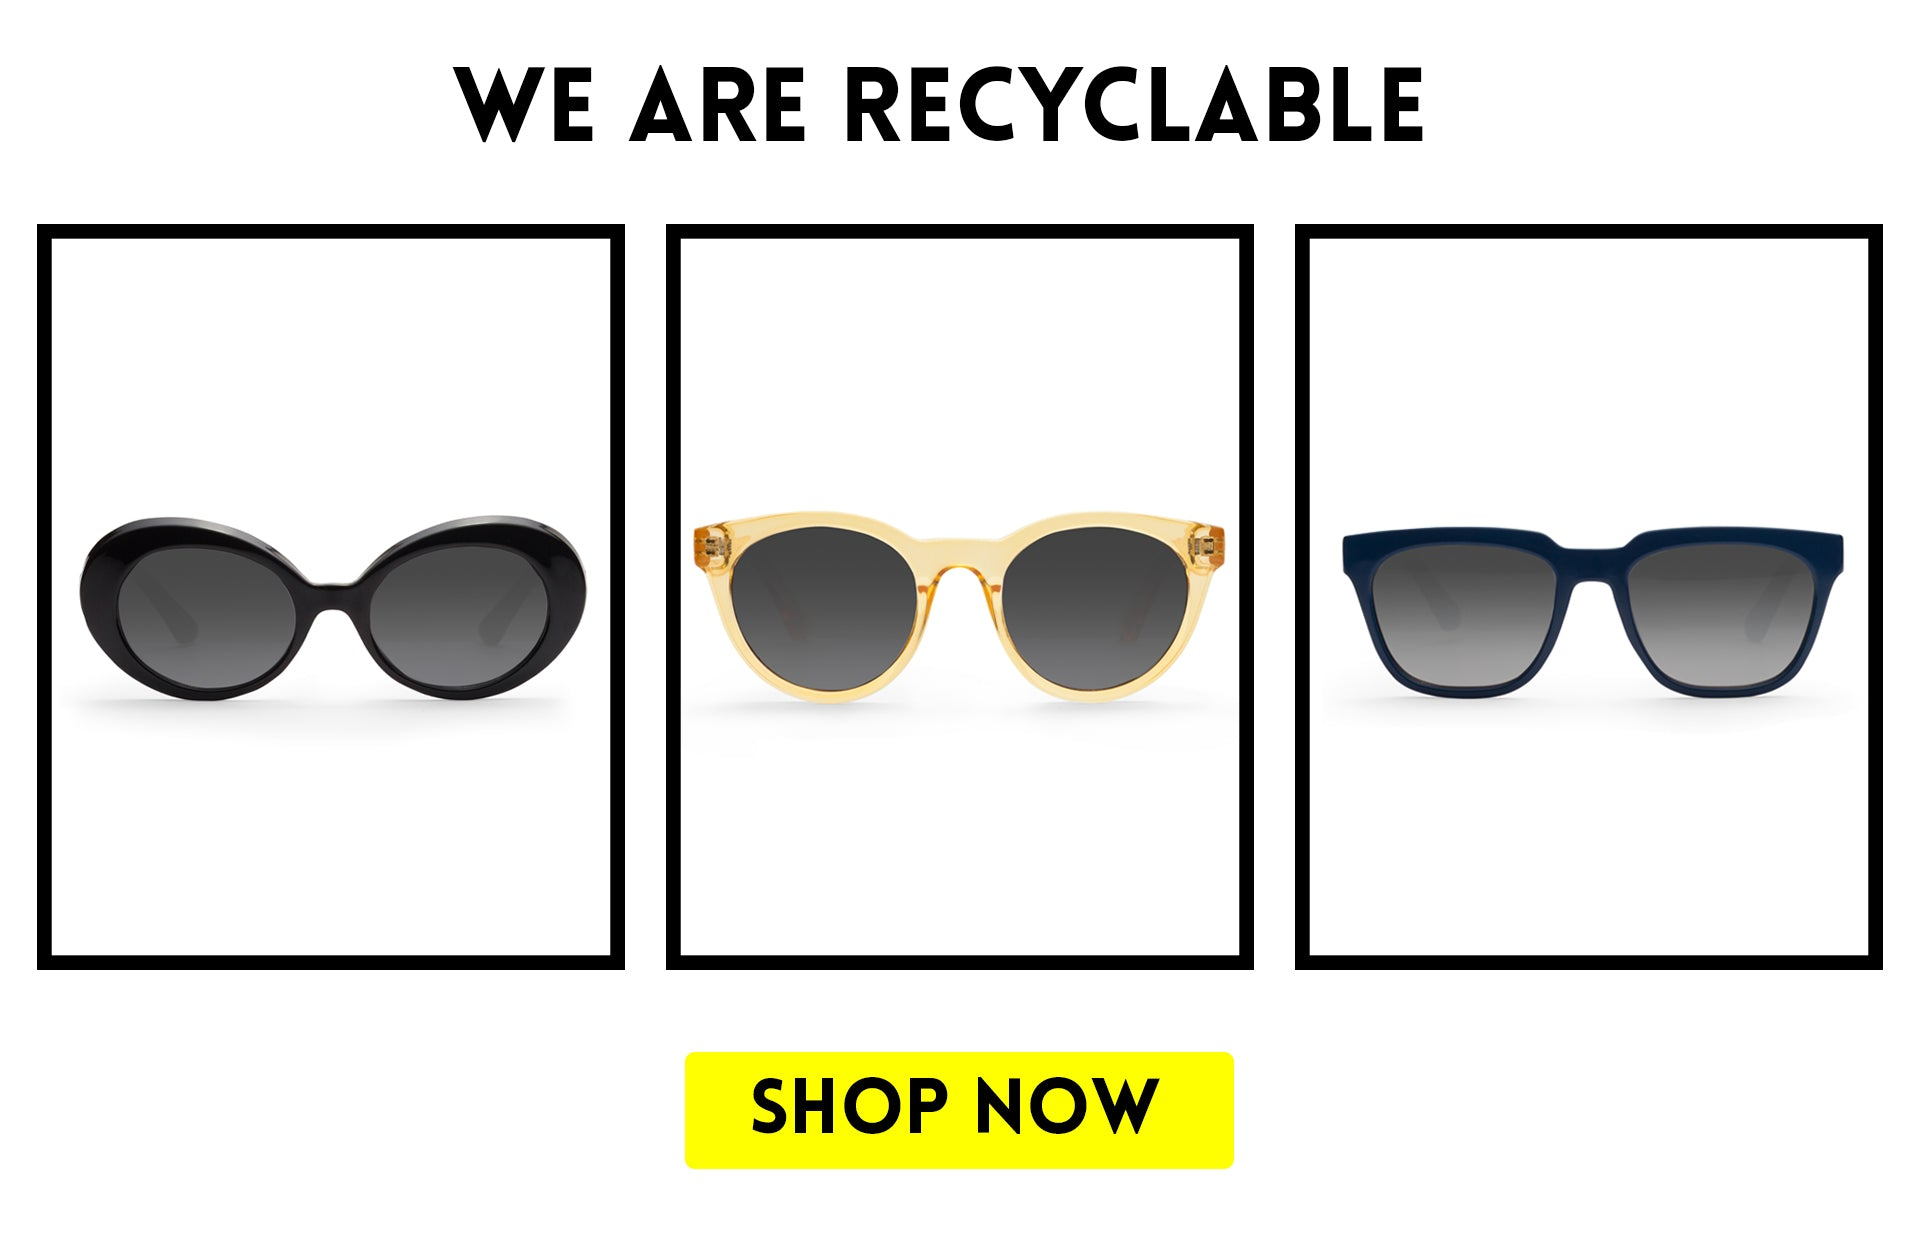 Shop recyclable sunglasses